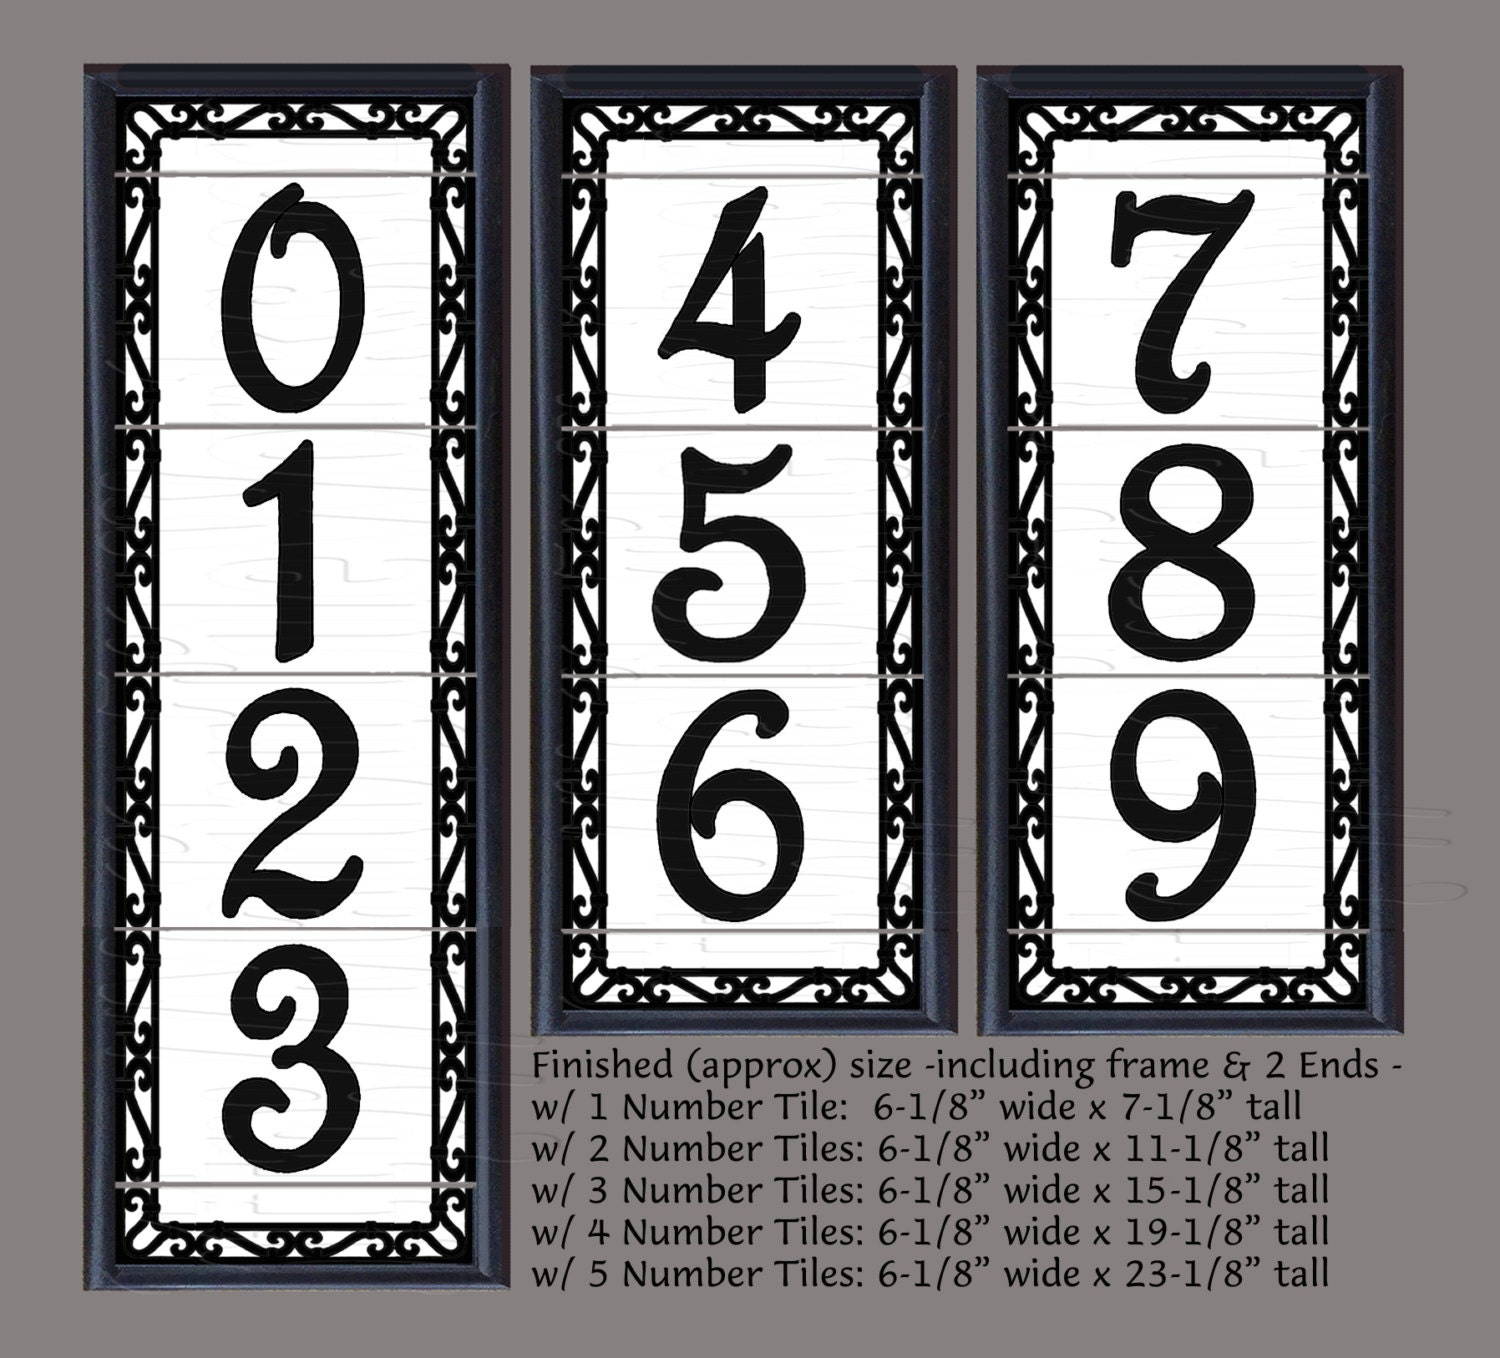 Framed decorative tile house numbers framed decorative zoom dailygadgetfo Choice Image